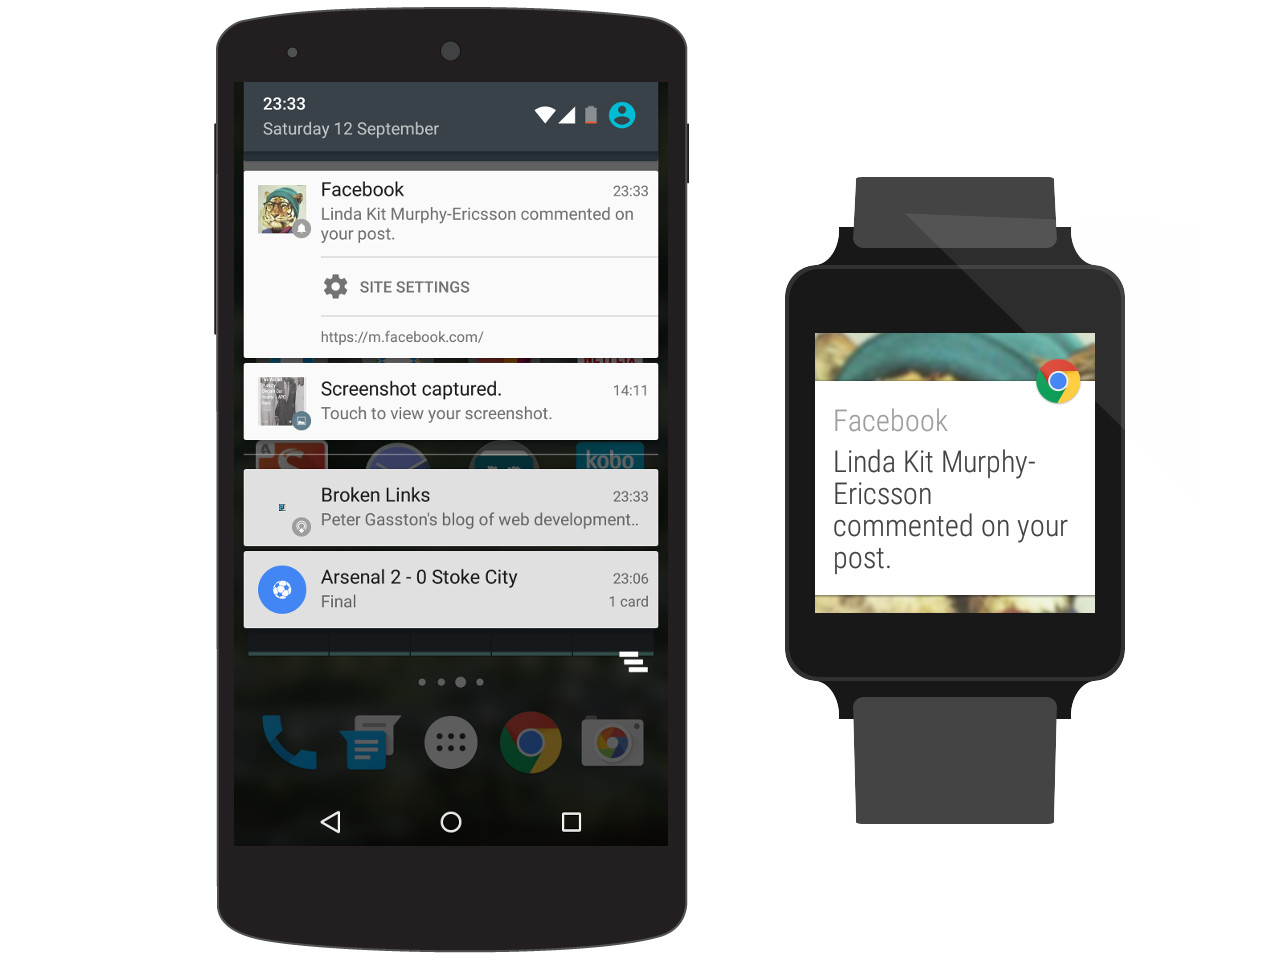 Android phone and watch showing a Facebook notification